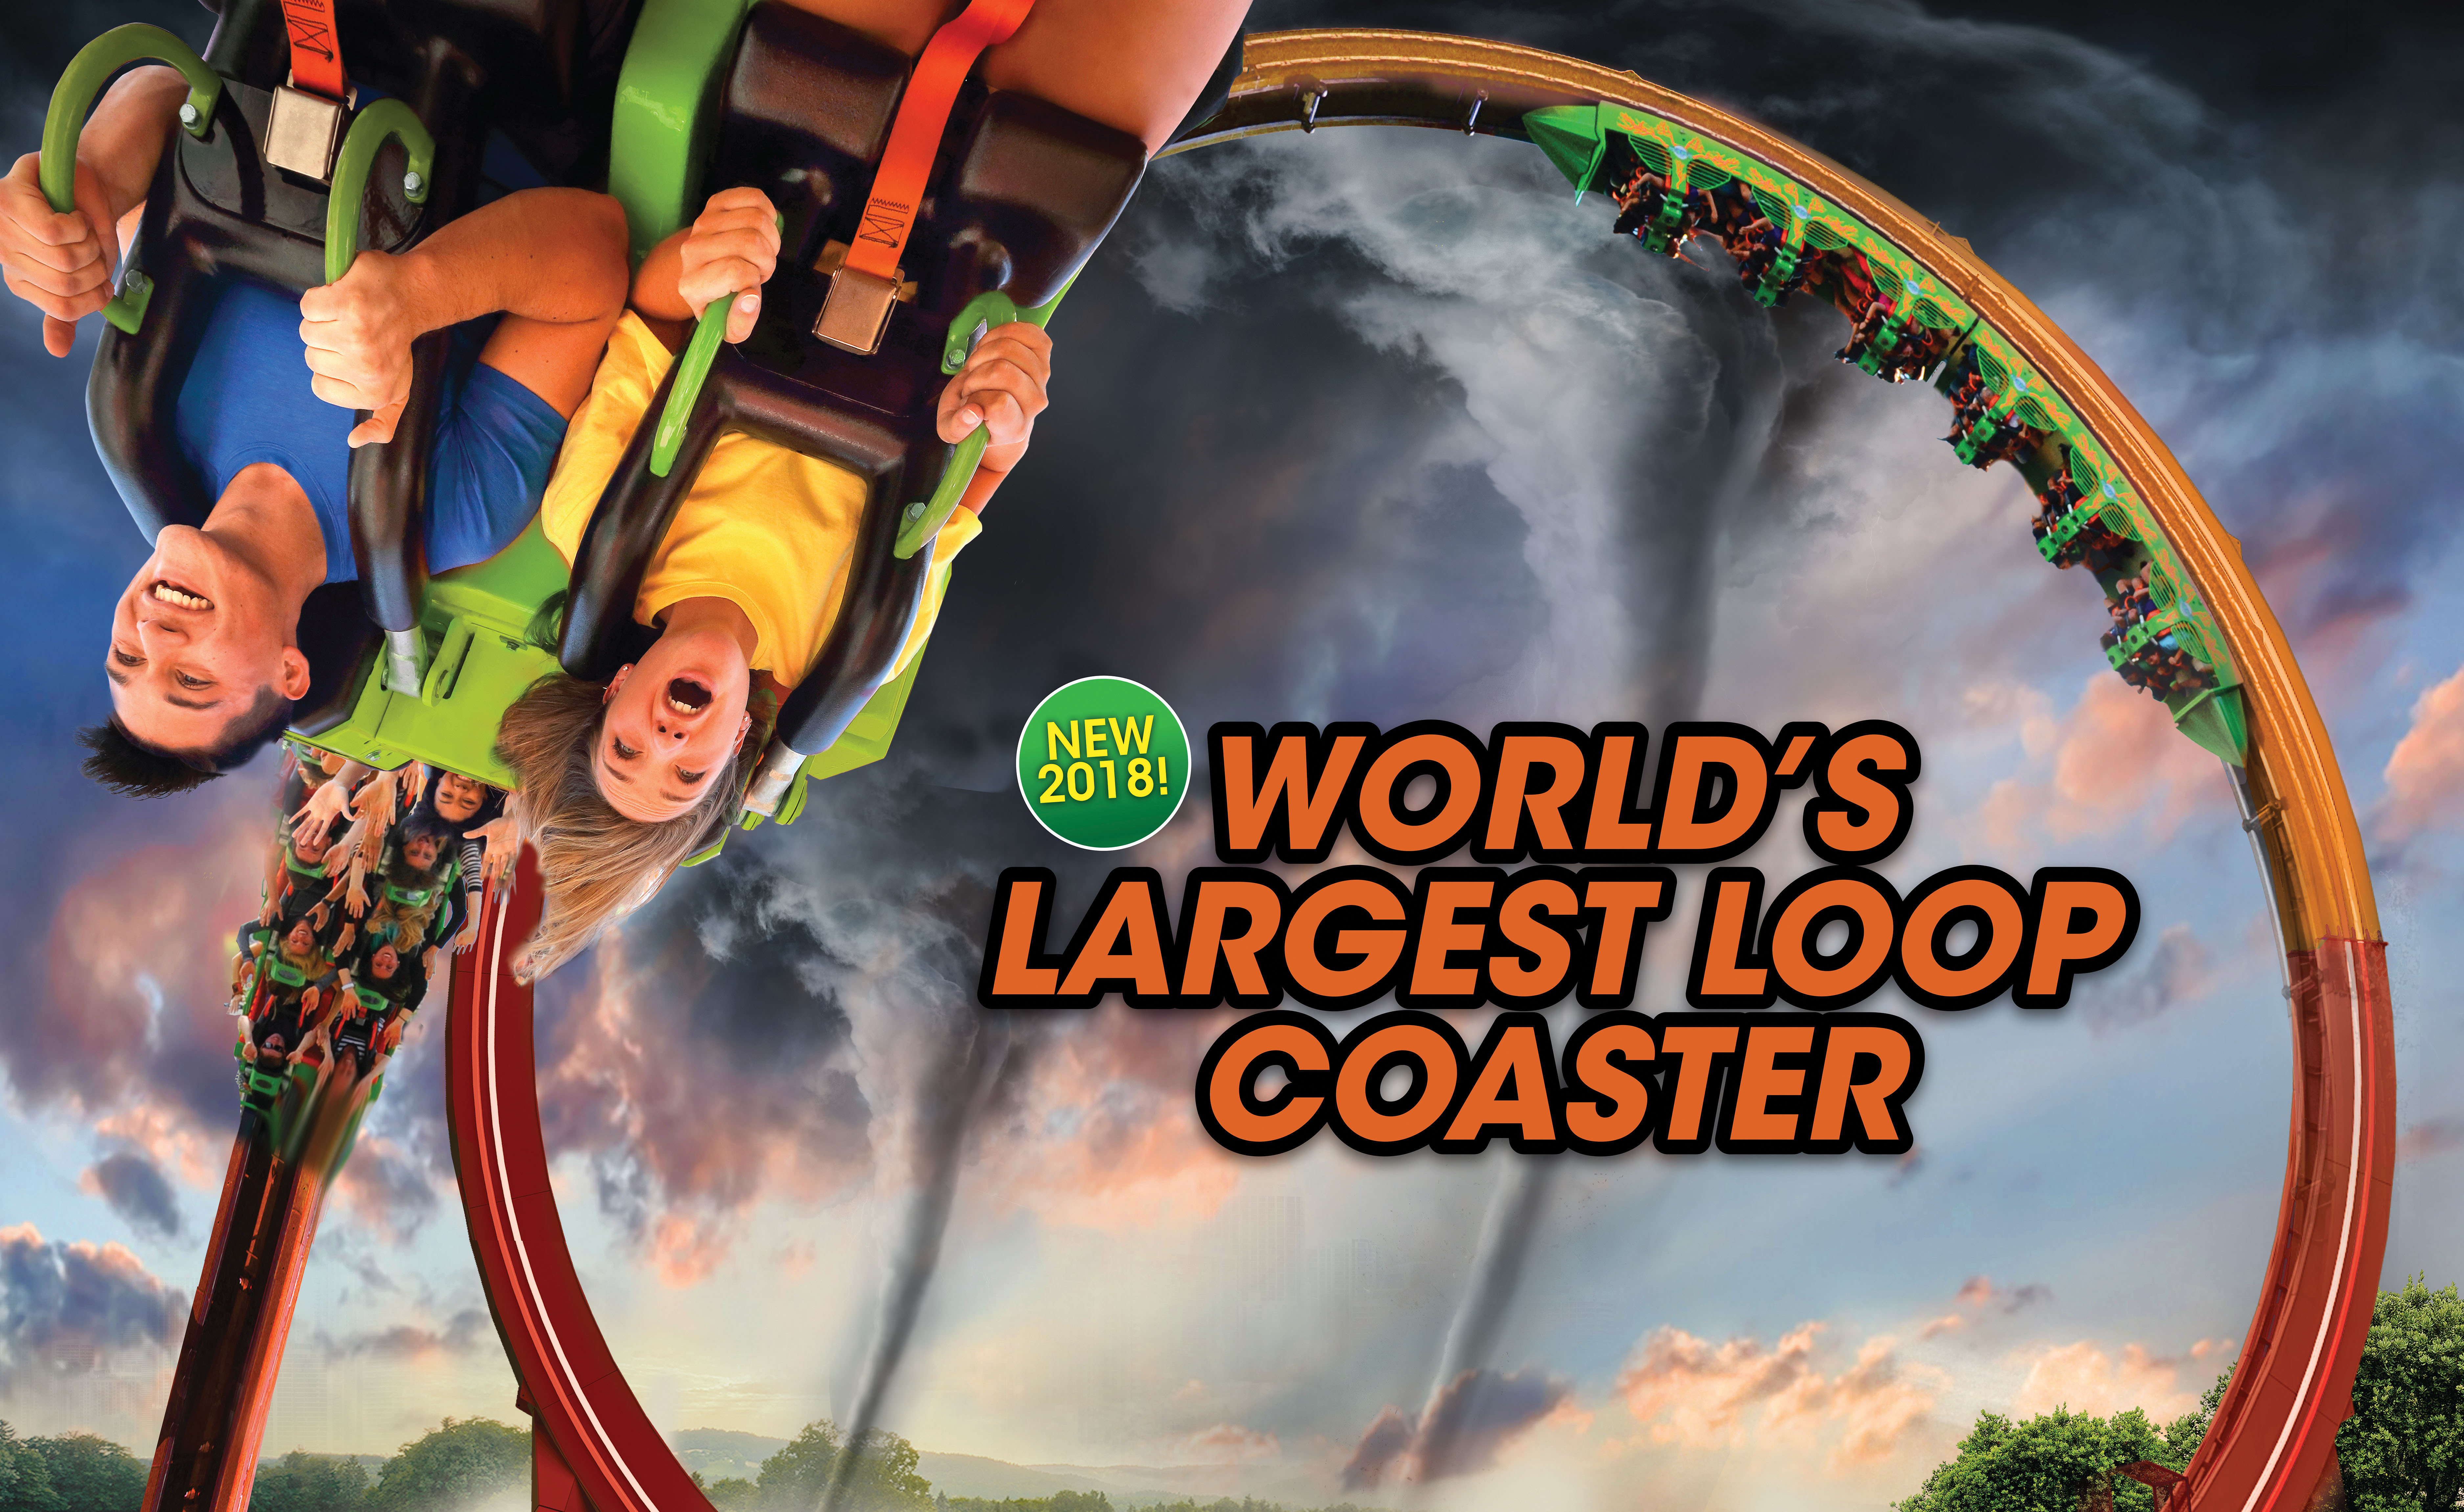 New Record Breaking Coaster To Debut At Six Flags Great America Business Wire